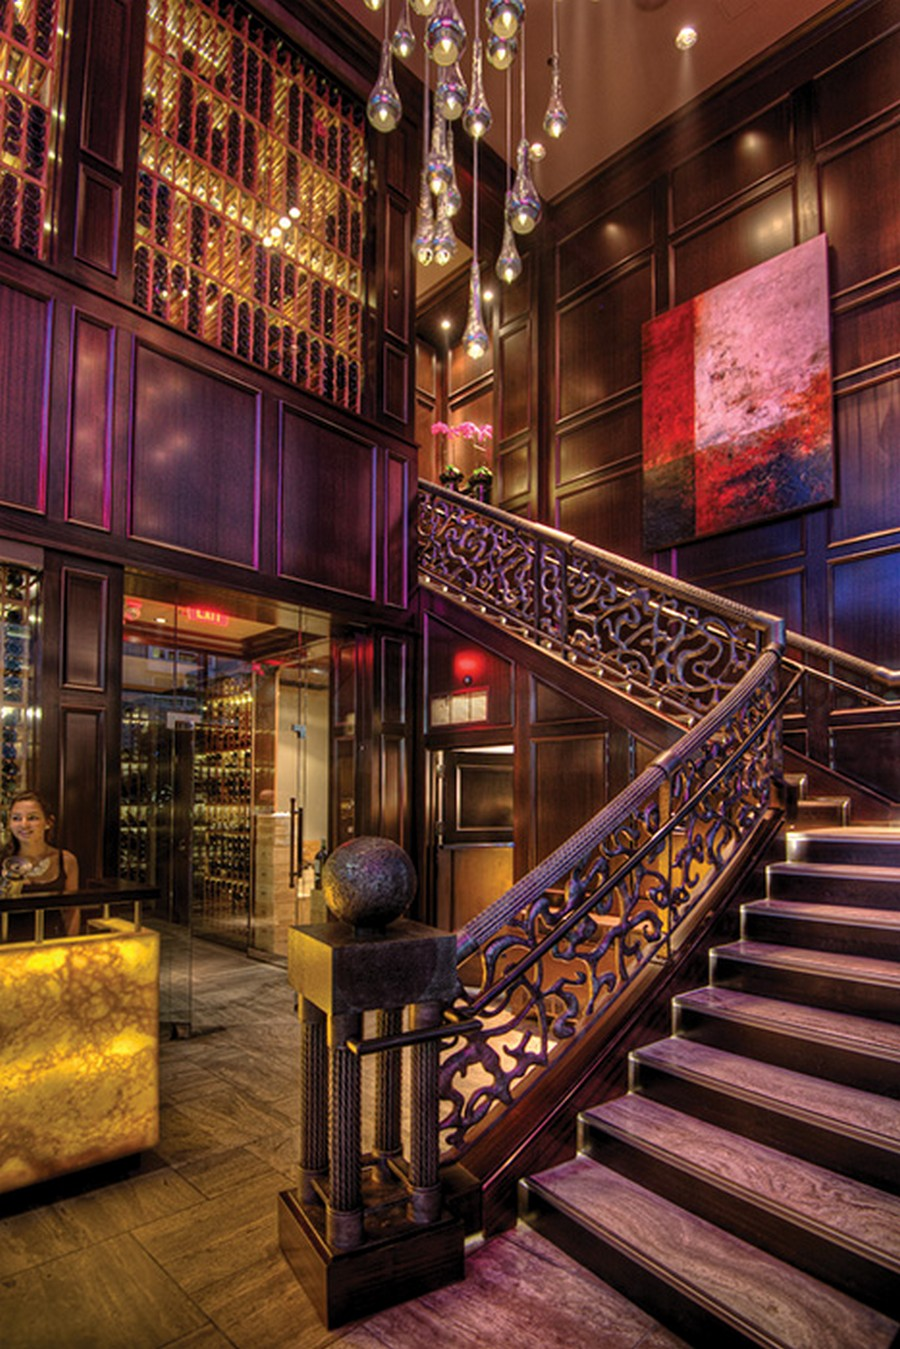 See The Top Hospitality Projects By The Johnson Studio At Cooper Carry the johnson studio at cooper carry See The Top Hospitality Projects By The Johnson Studio At COOPER CARRY See The Top Hospitality Projects By The Johnson Studio At Cooper Carry 2